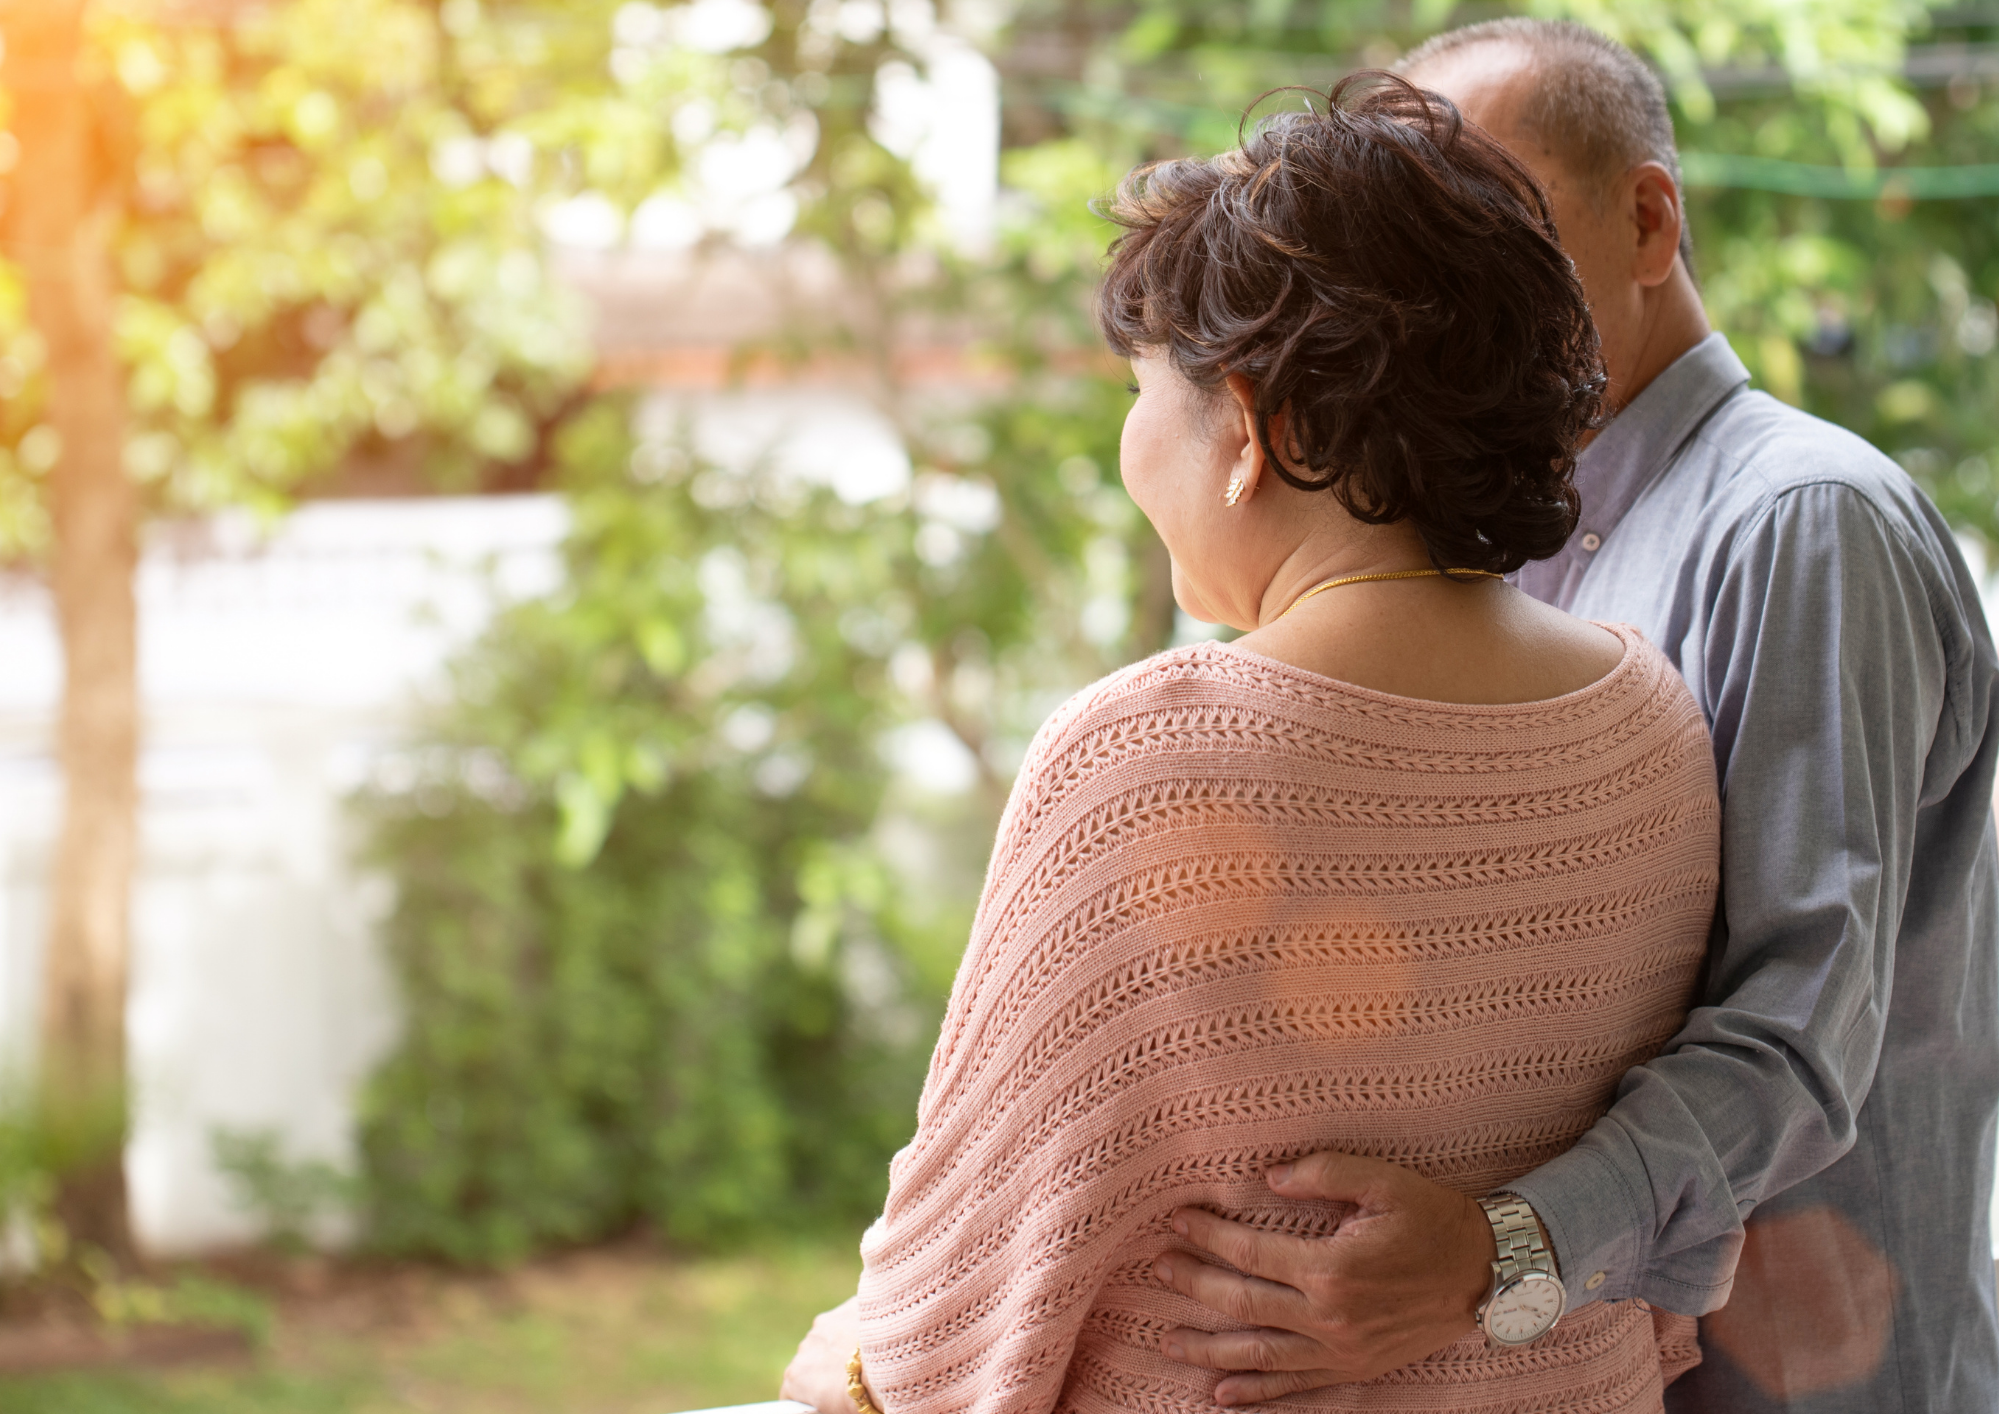 How to Safely Visit Older Relatives During the Coronavirus Pandemic